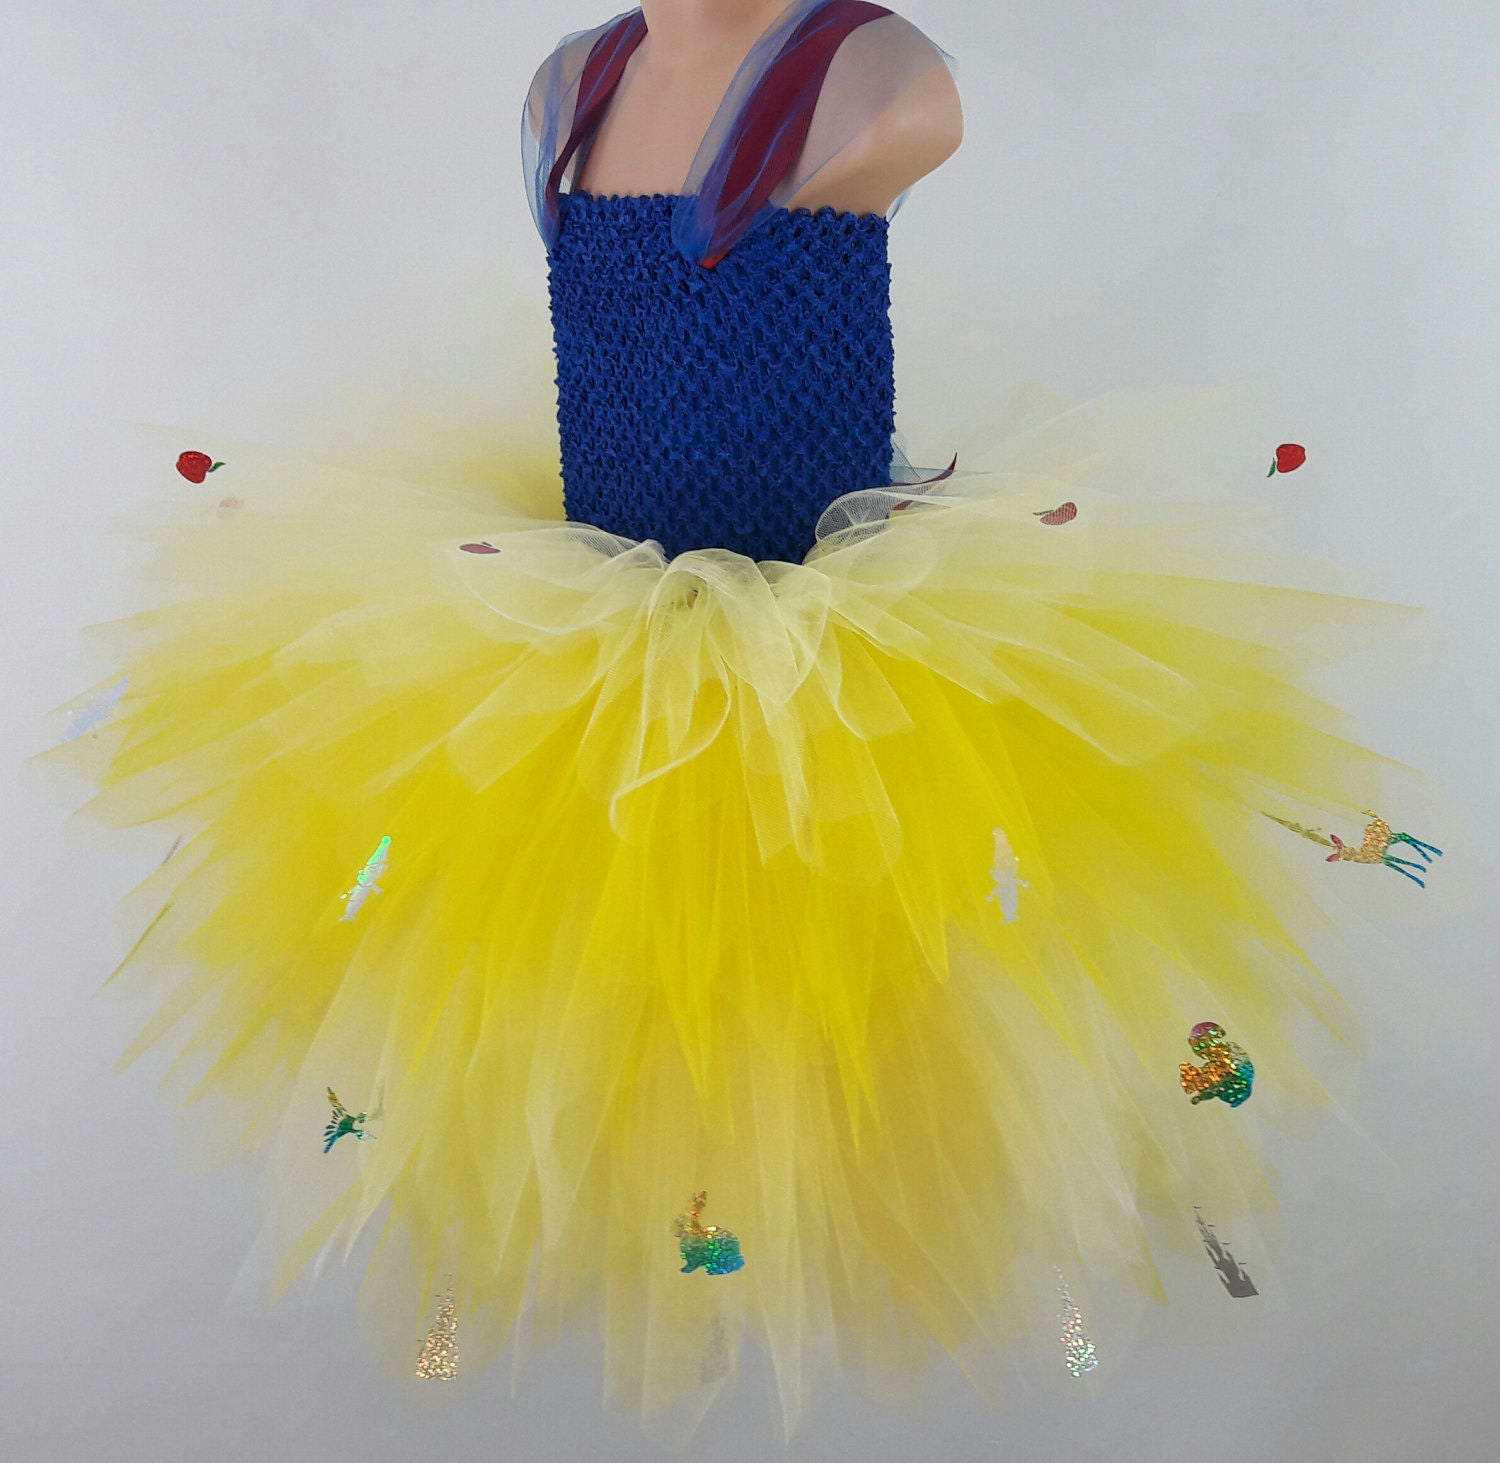 Inspired Snow White Long Multi Layered Adult Tutu Dress Perfect for PartiesPhoto ShootCosplay Dress Up